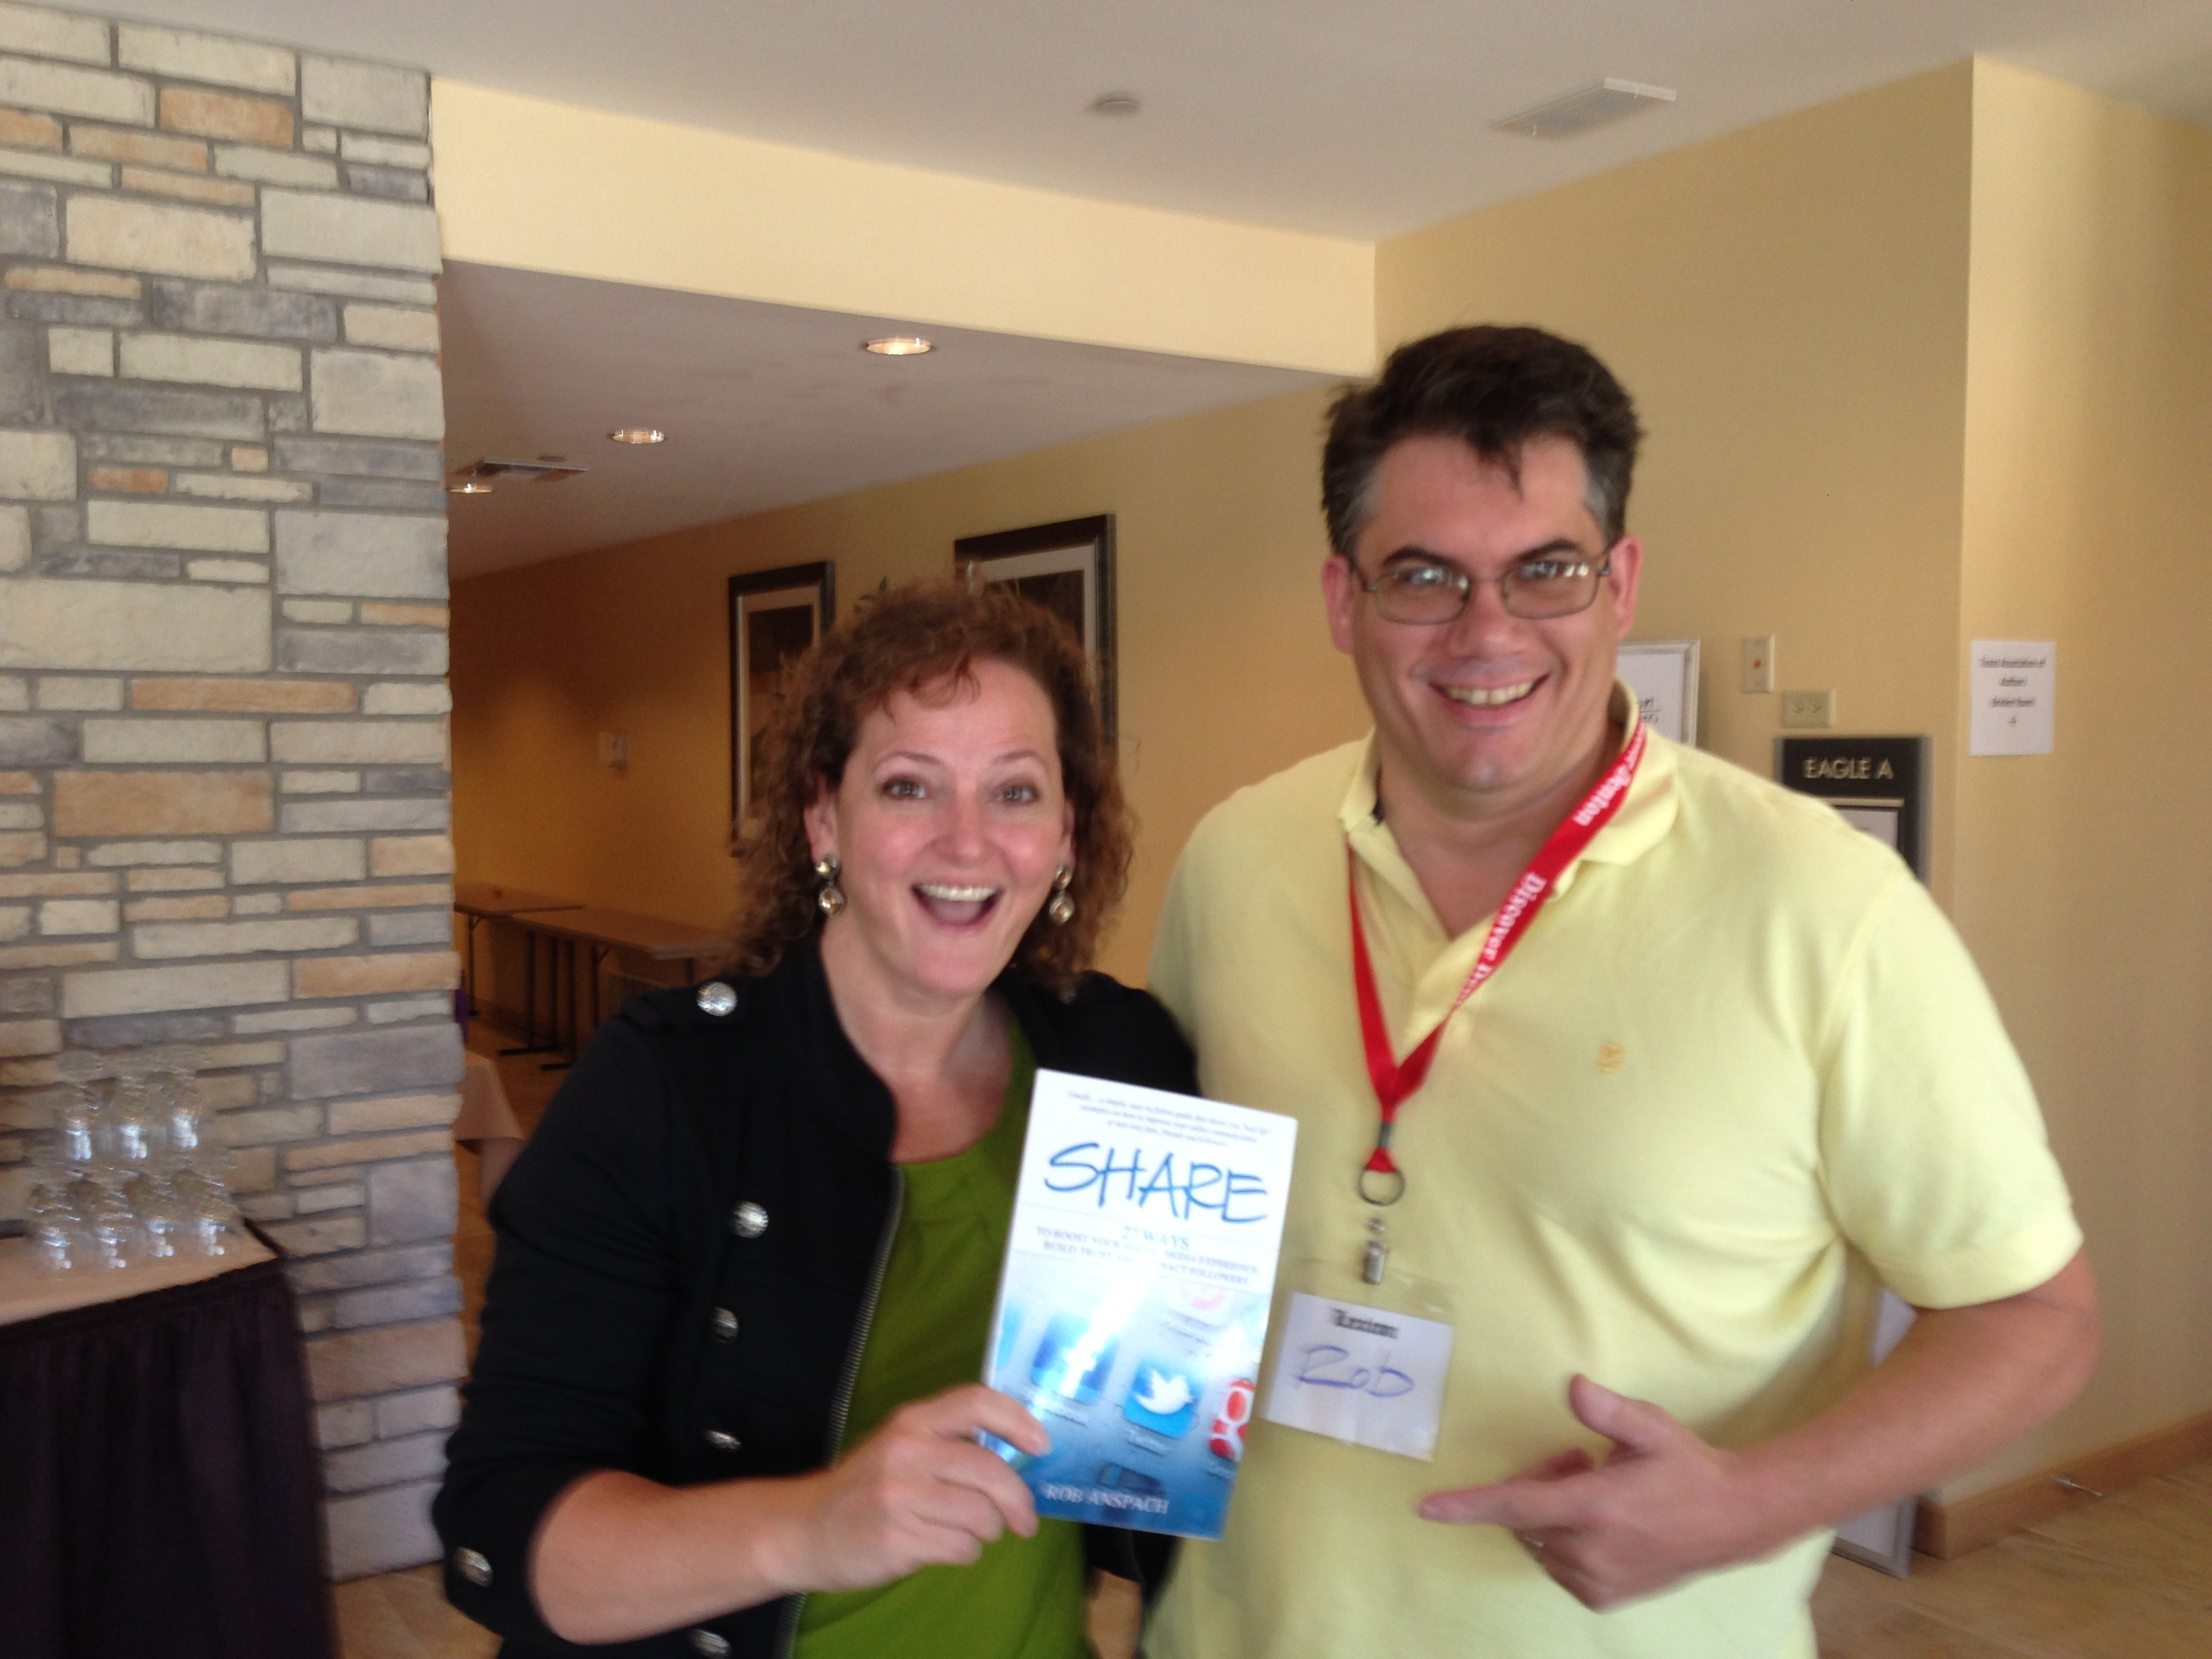 Rob Anspach with Elizabeth McCormick